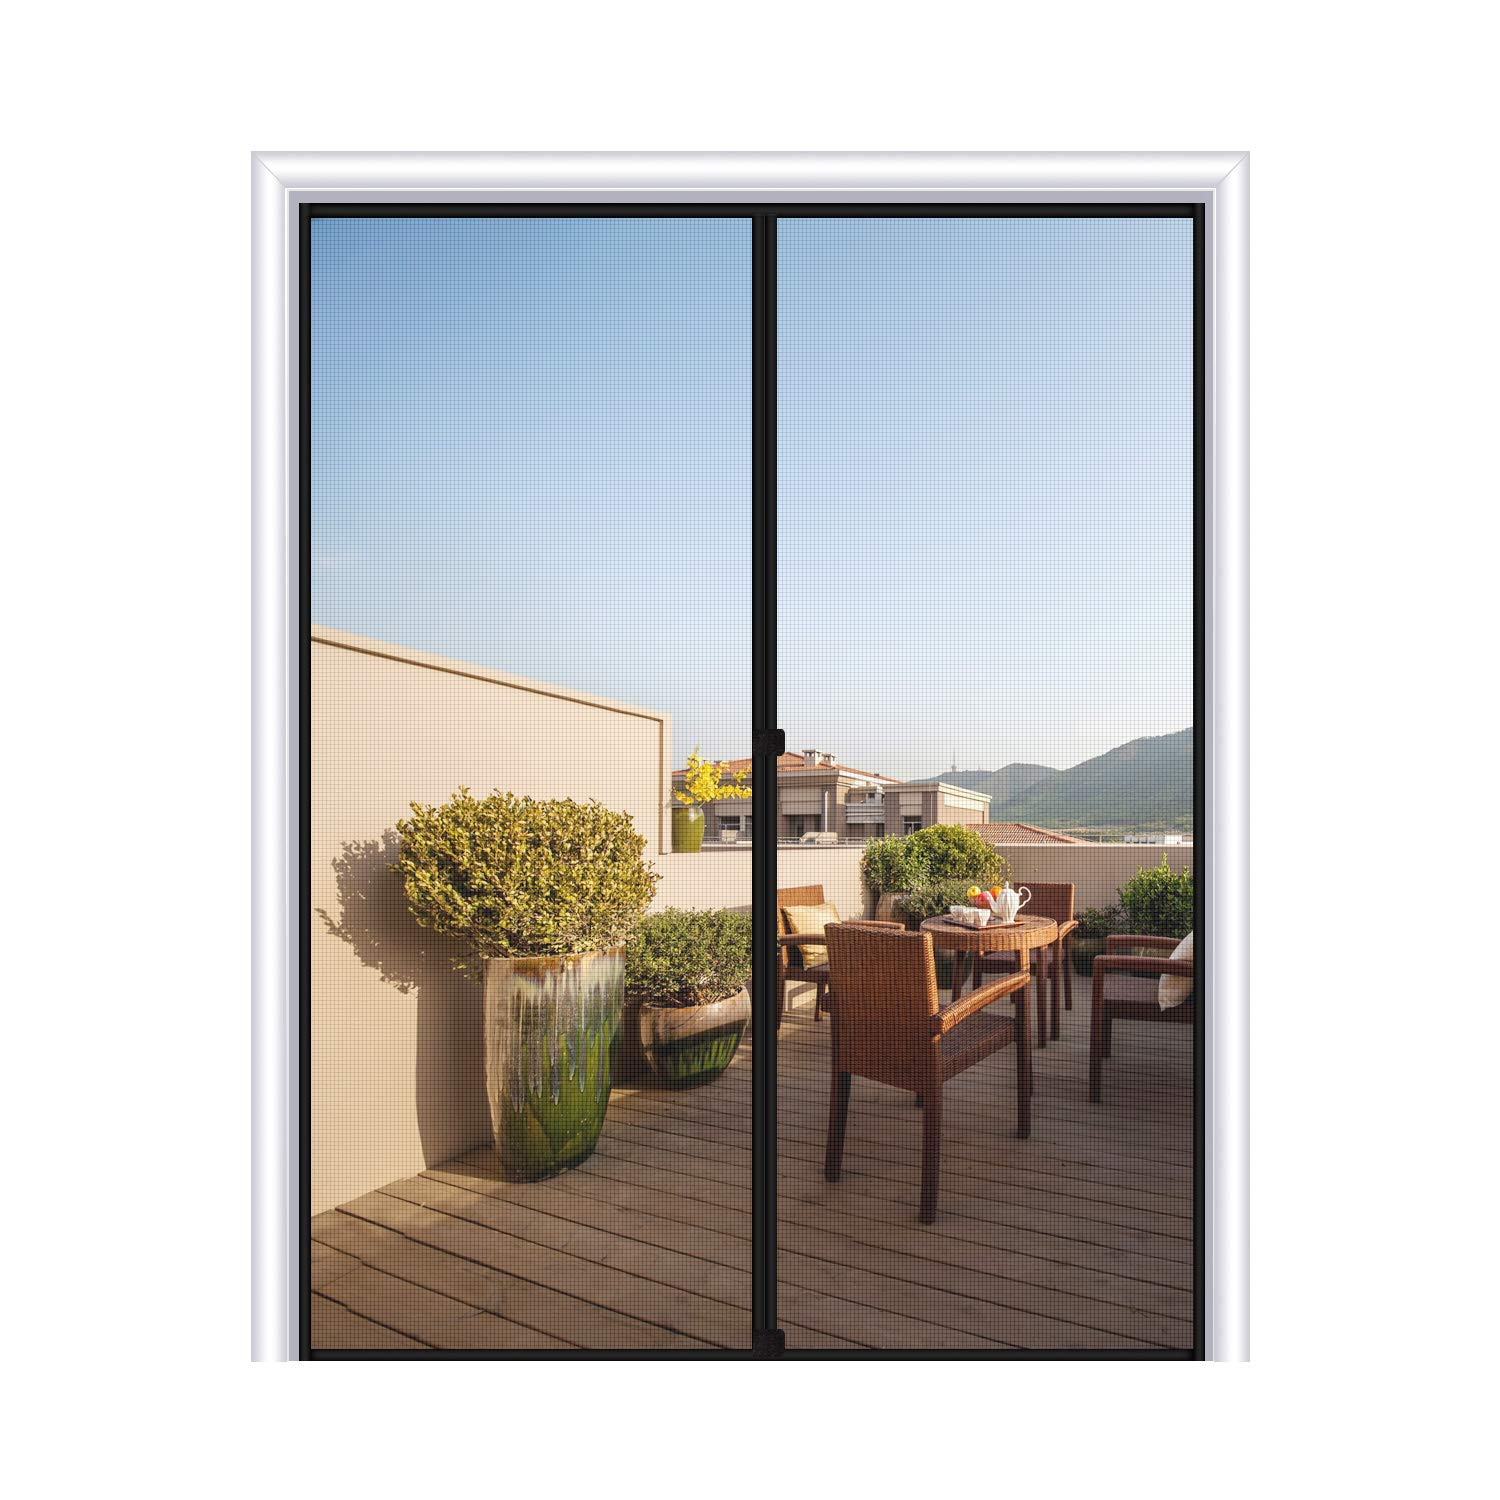 MAGZO Magnetic Screen Door 72 x 96, Sliding Door Mesh Curtain with Heavy Duty Keep Bugs Mosquito Out